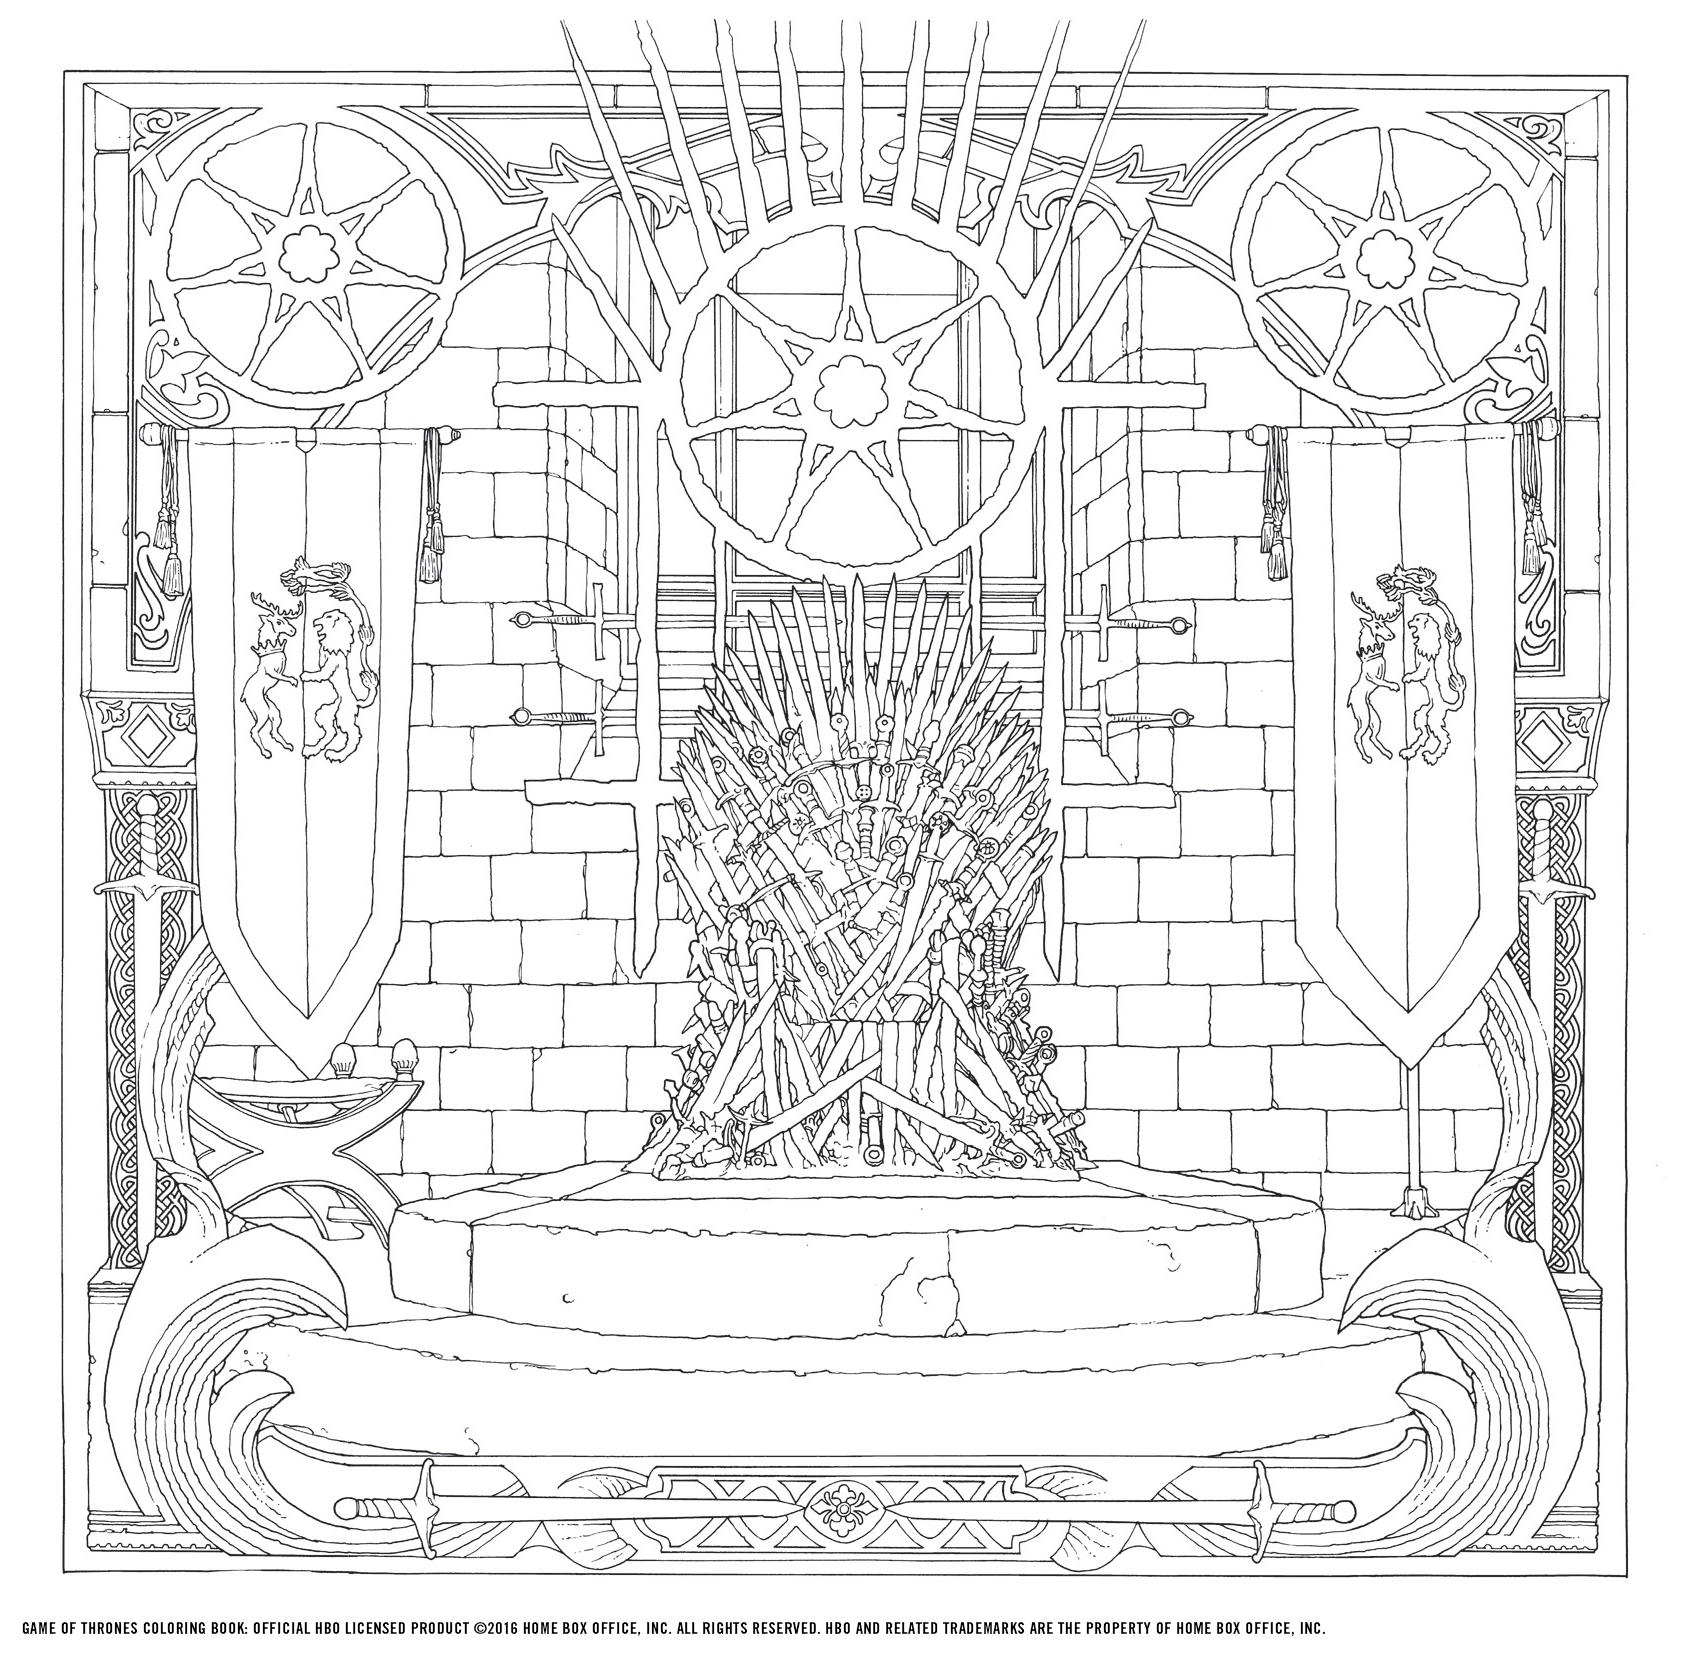 Game of Thrones colouring book revealed